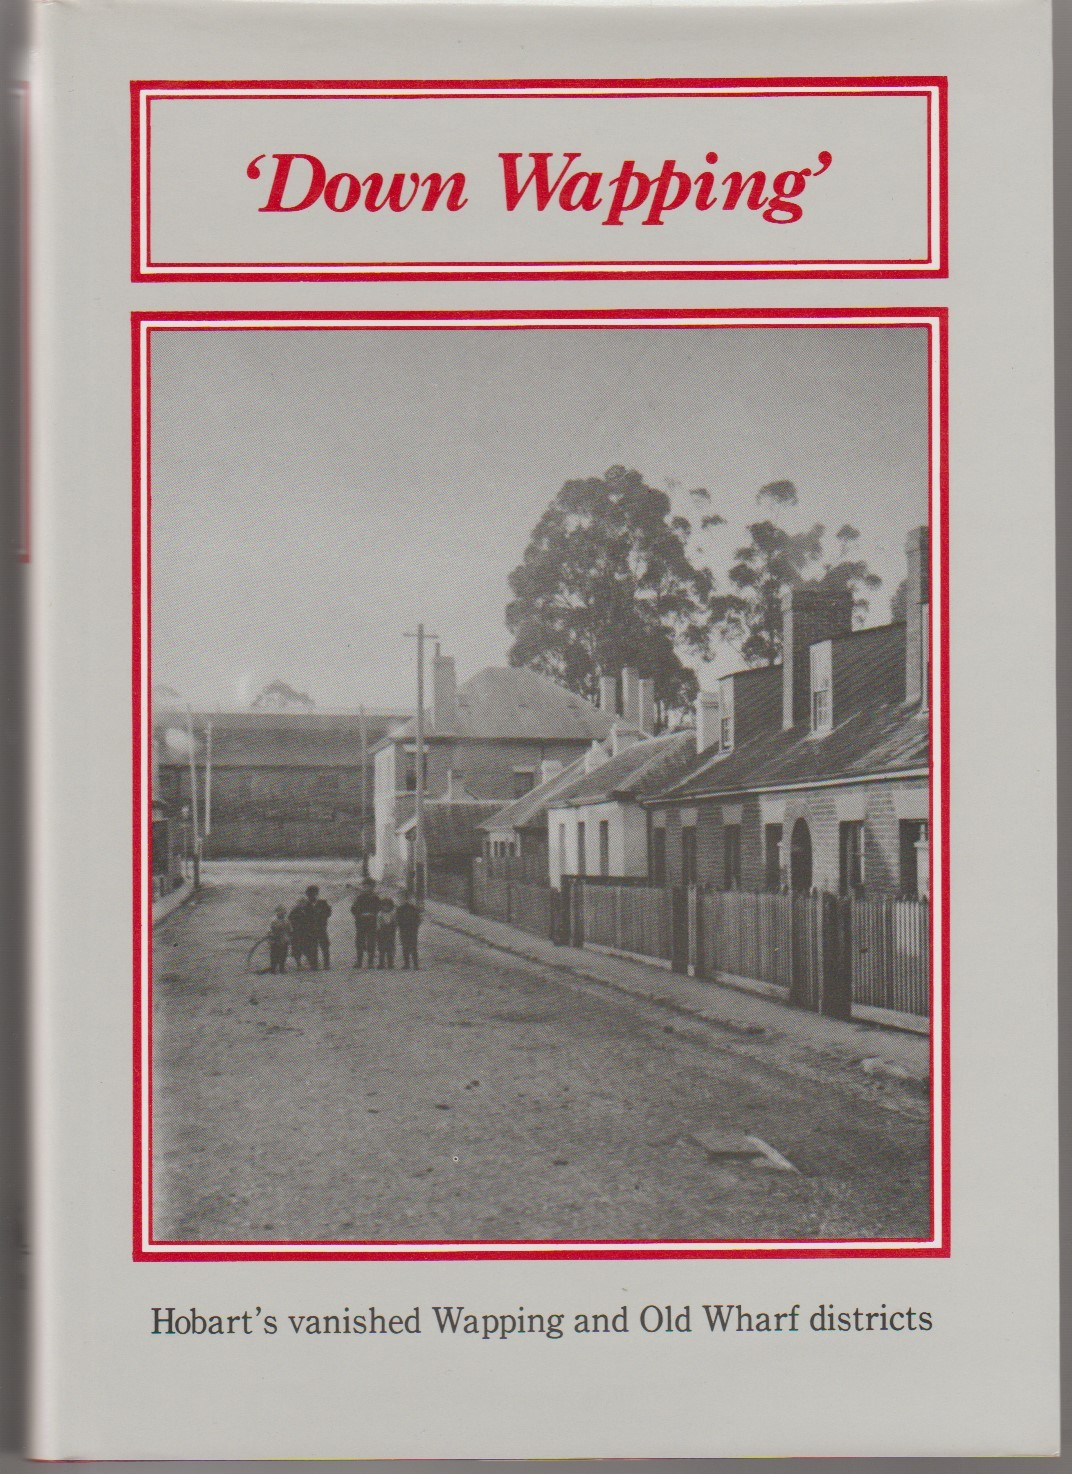 Down Wapping - Hobart's vanished Wapping and Old Wharf districts - signed copy